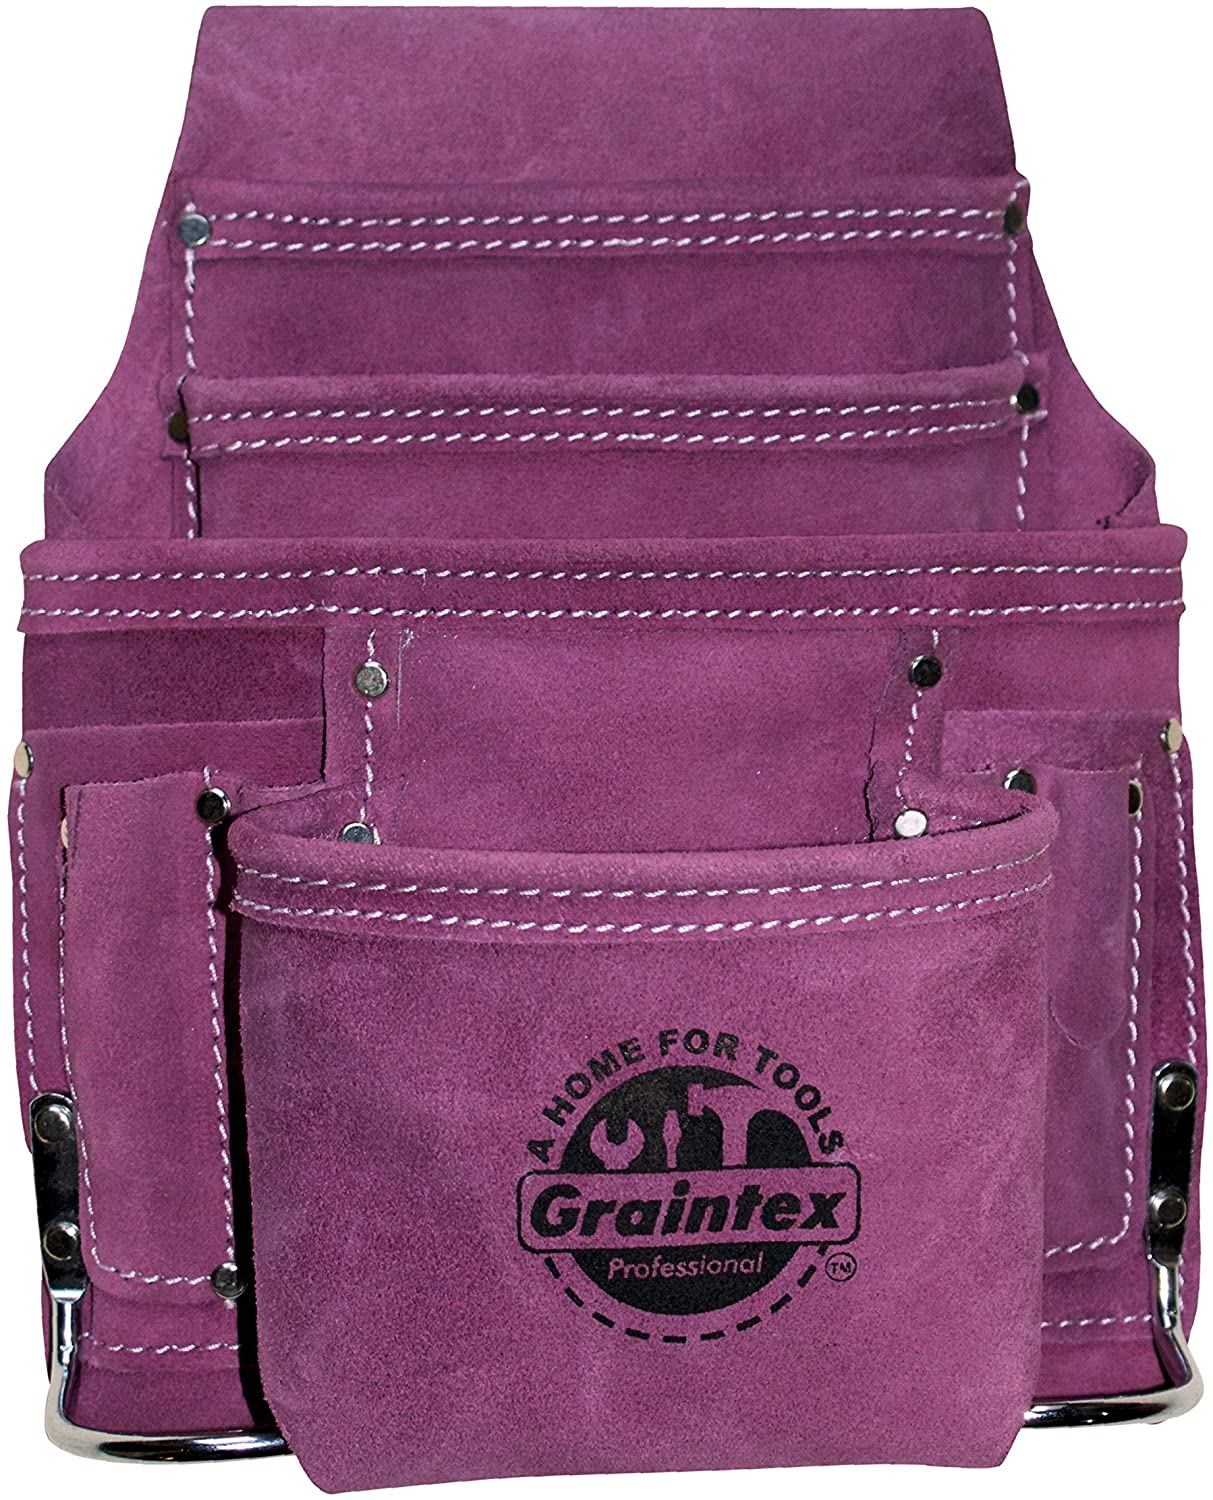 Graintex SS1123 10 Pocket Nail & Tool Pouch Purple Color Suede Leather for Constructors, Electricians, Plumbers, Handymen